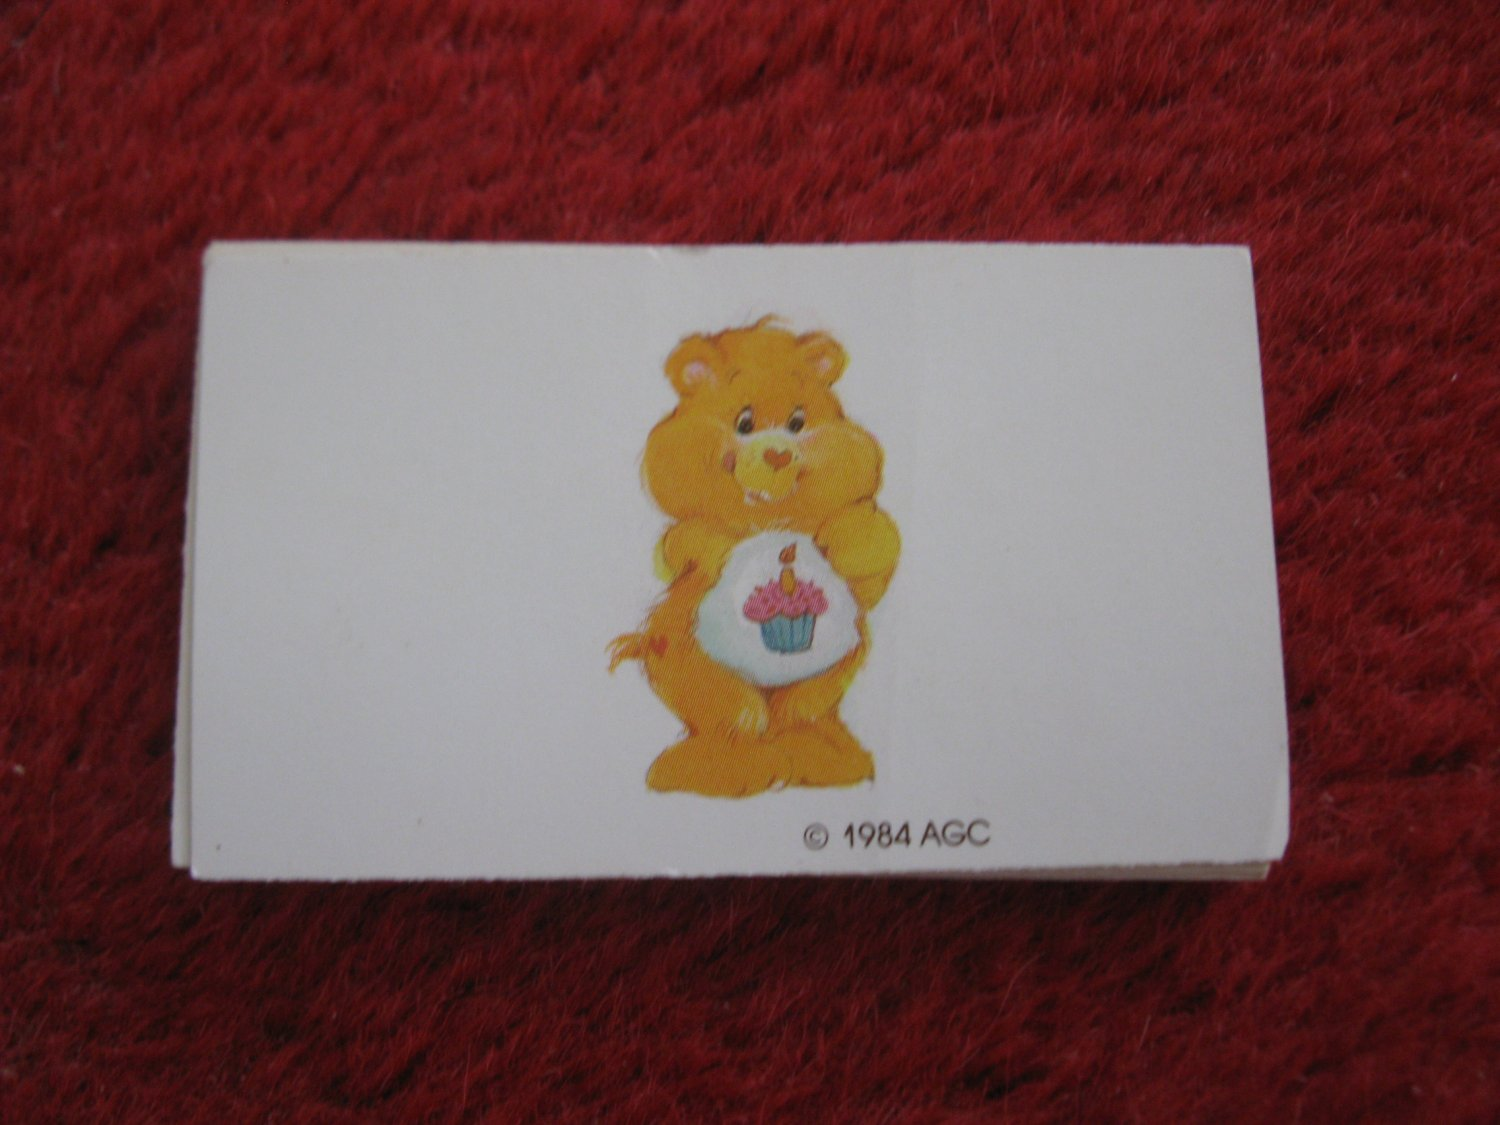 1984 Care Bears- Warm Feeling Board Game Replacement part: 1 bear card